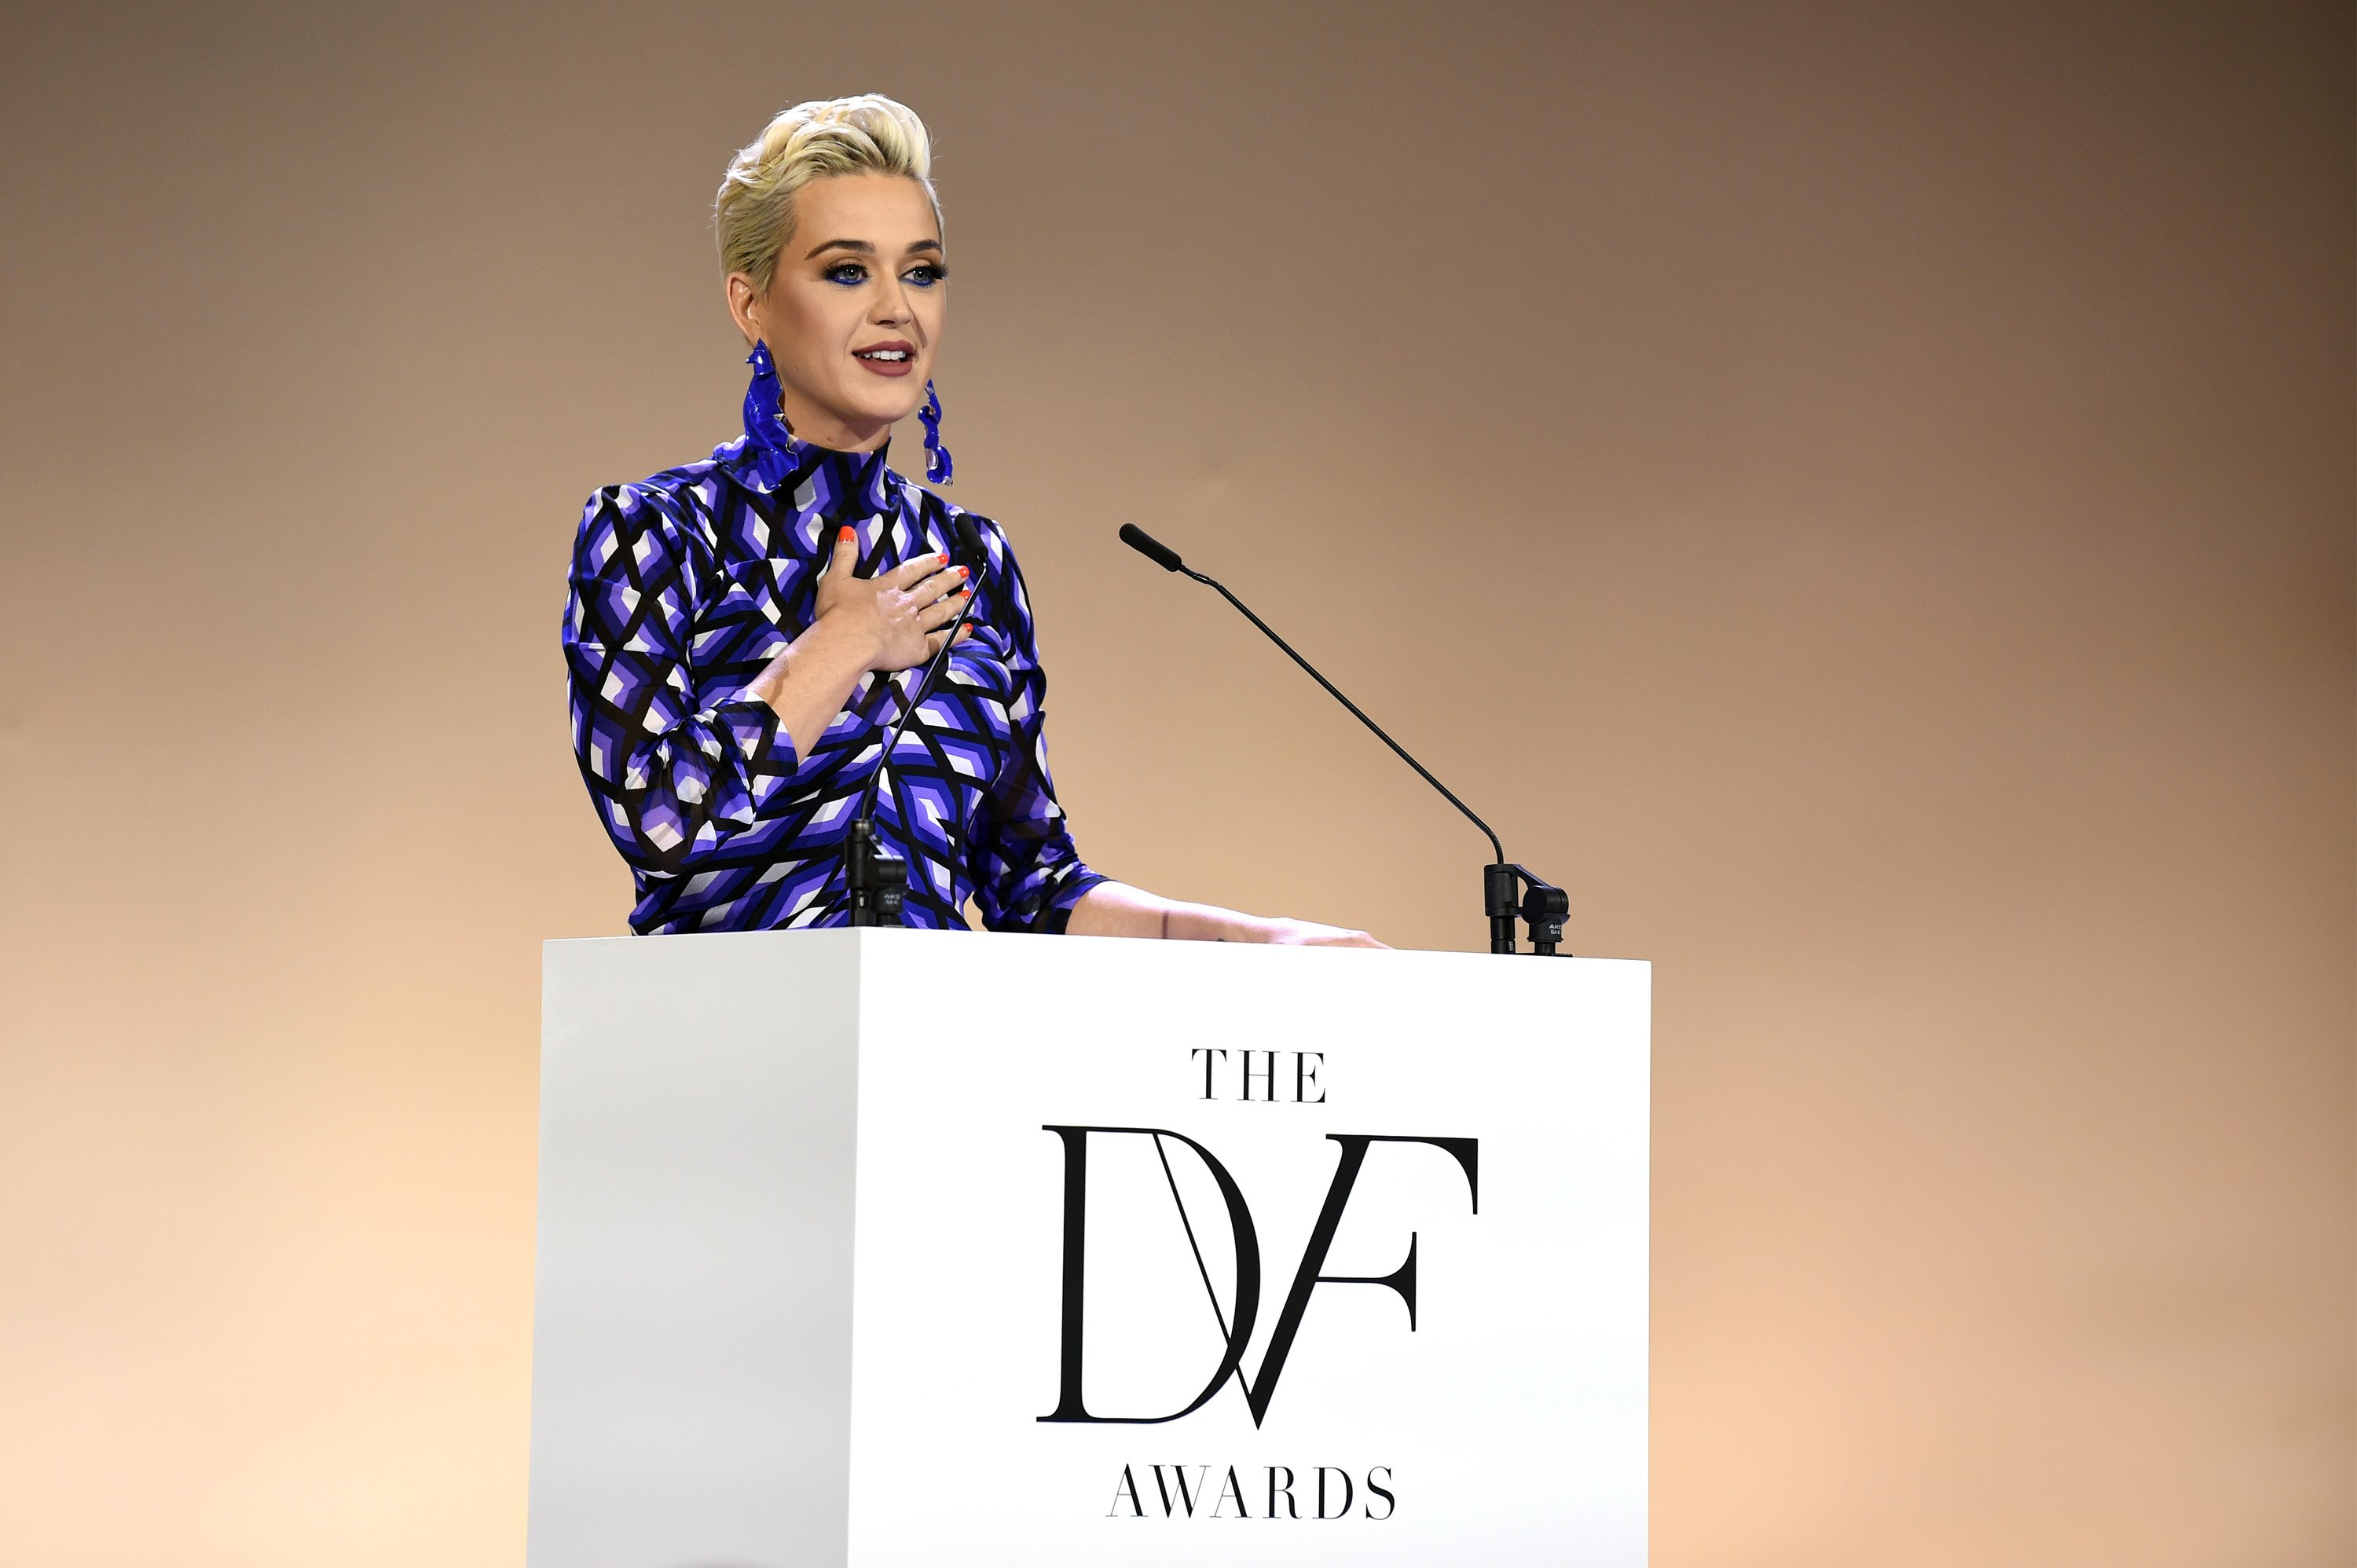 Katy Perry speaks onstage during 10th Annual DVF Awards at Brooklyn Museum on April 11, 2019 in New York City | Photo: Getty Images